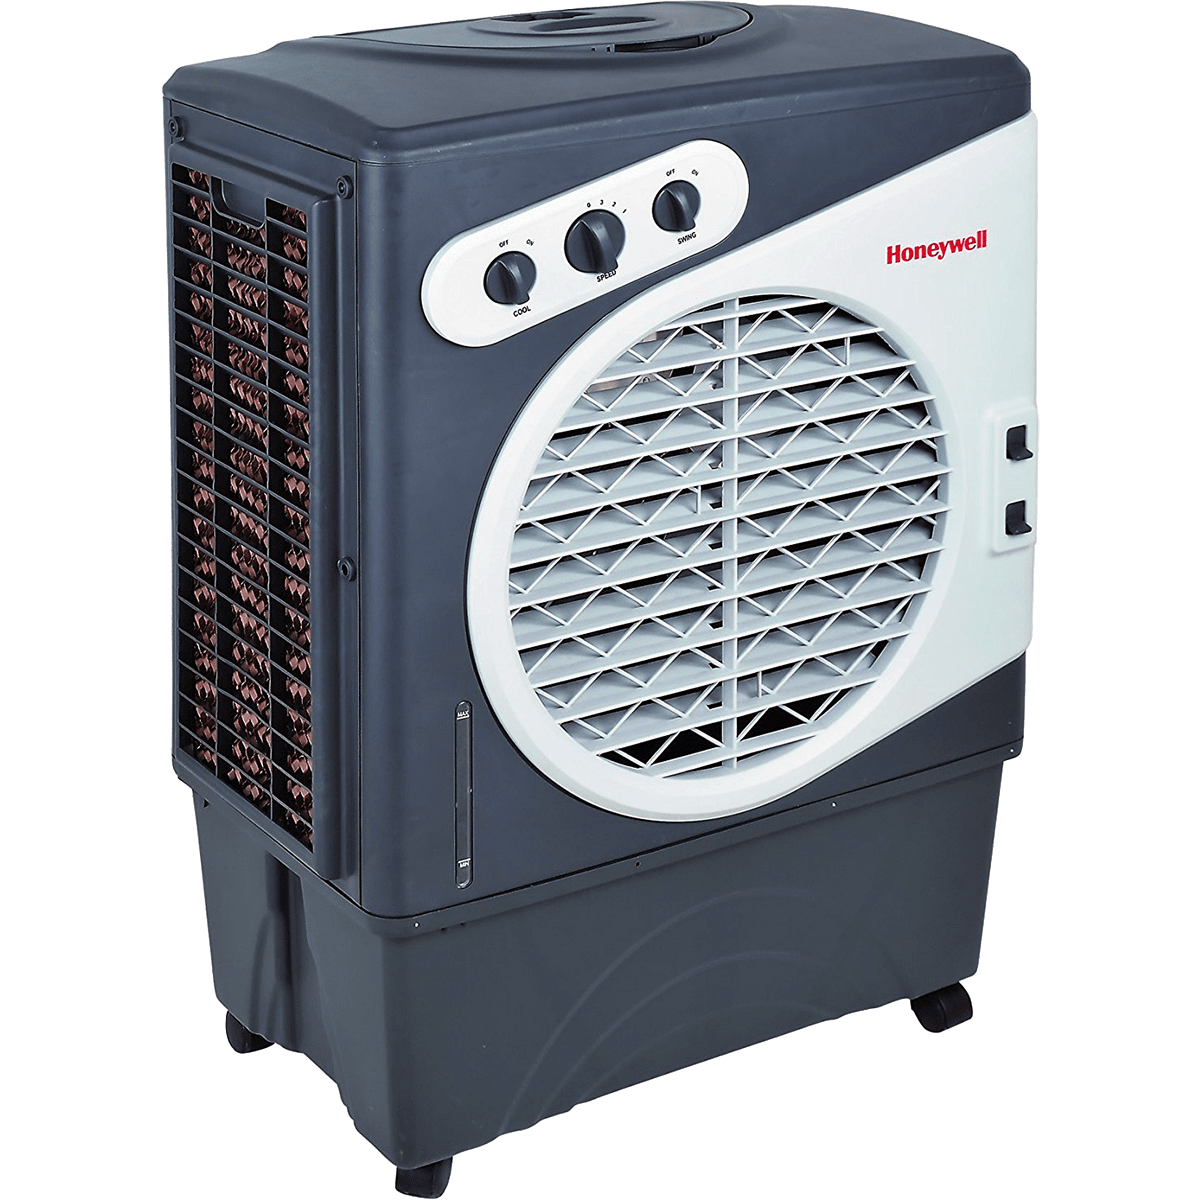 Honeywell 1540 CFM Outdoor Evaporative Cooler Model: CO60PM